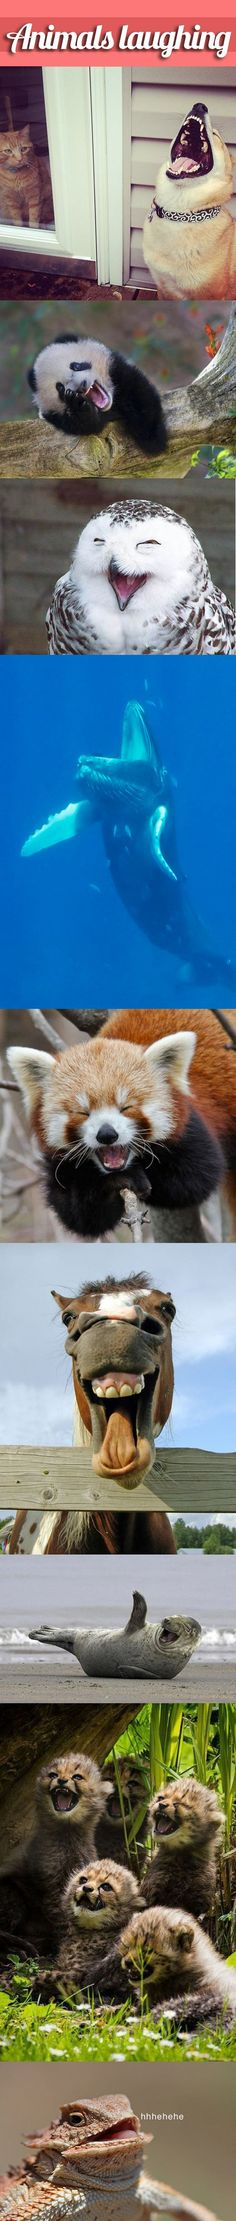 animals laughing. could there be anything cuter?